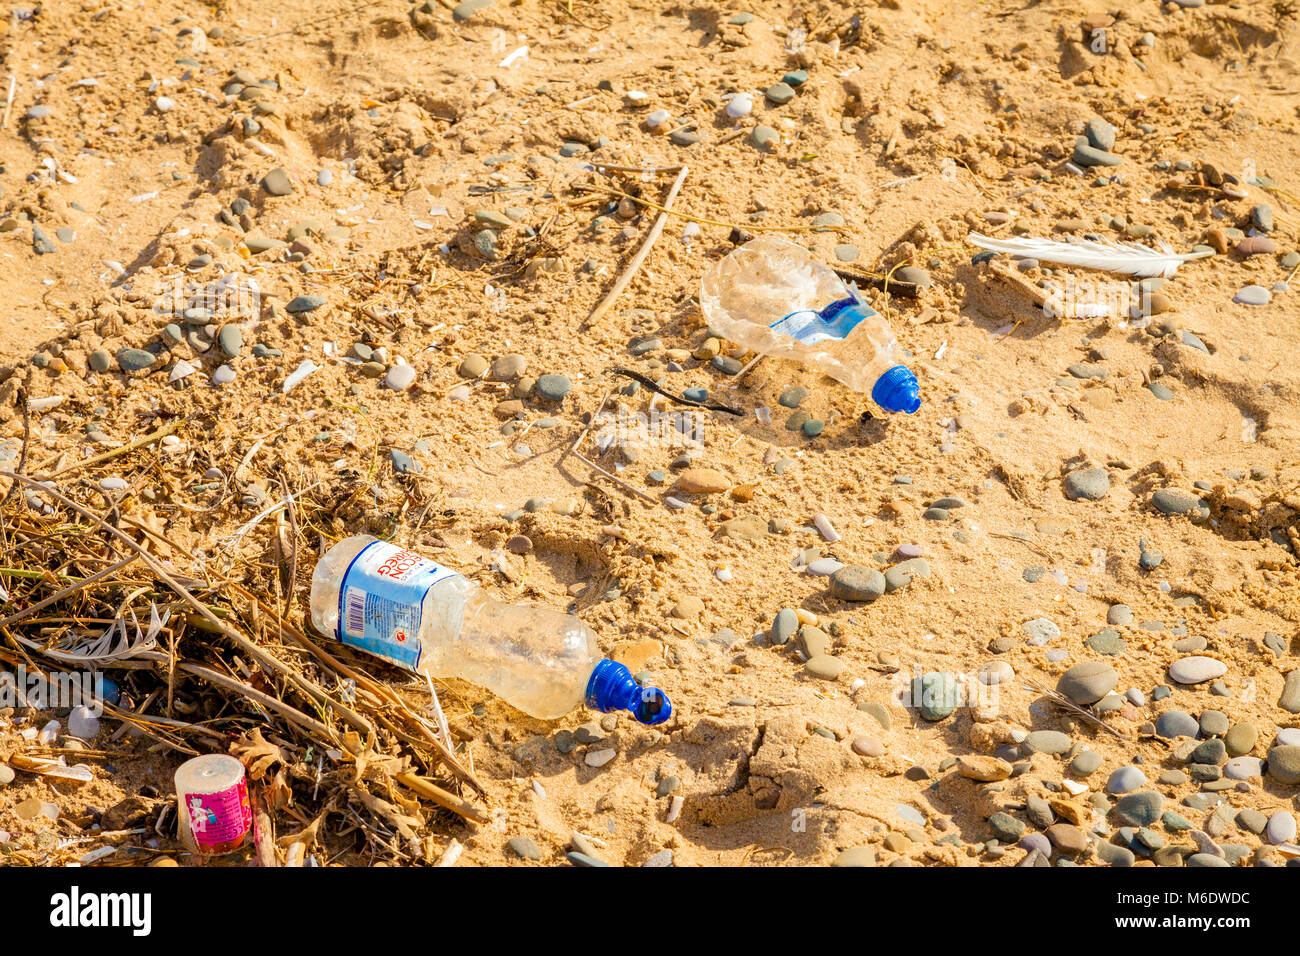 plastic waste on beach . North Wales, UK. - Stock Image